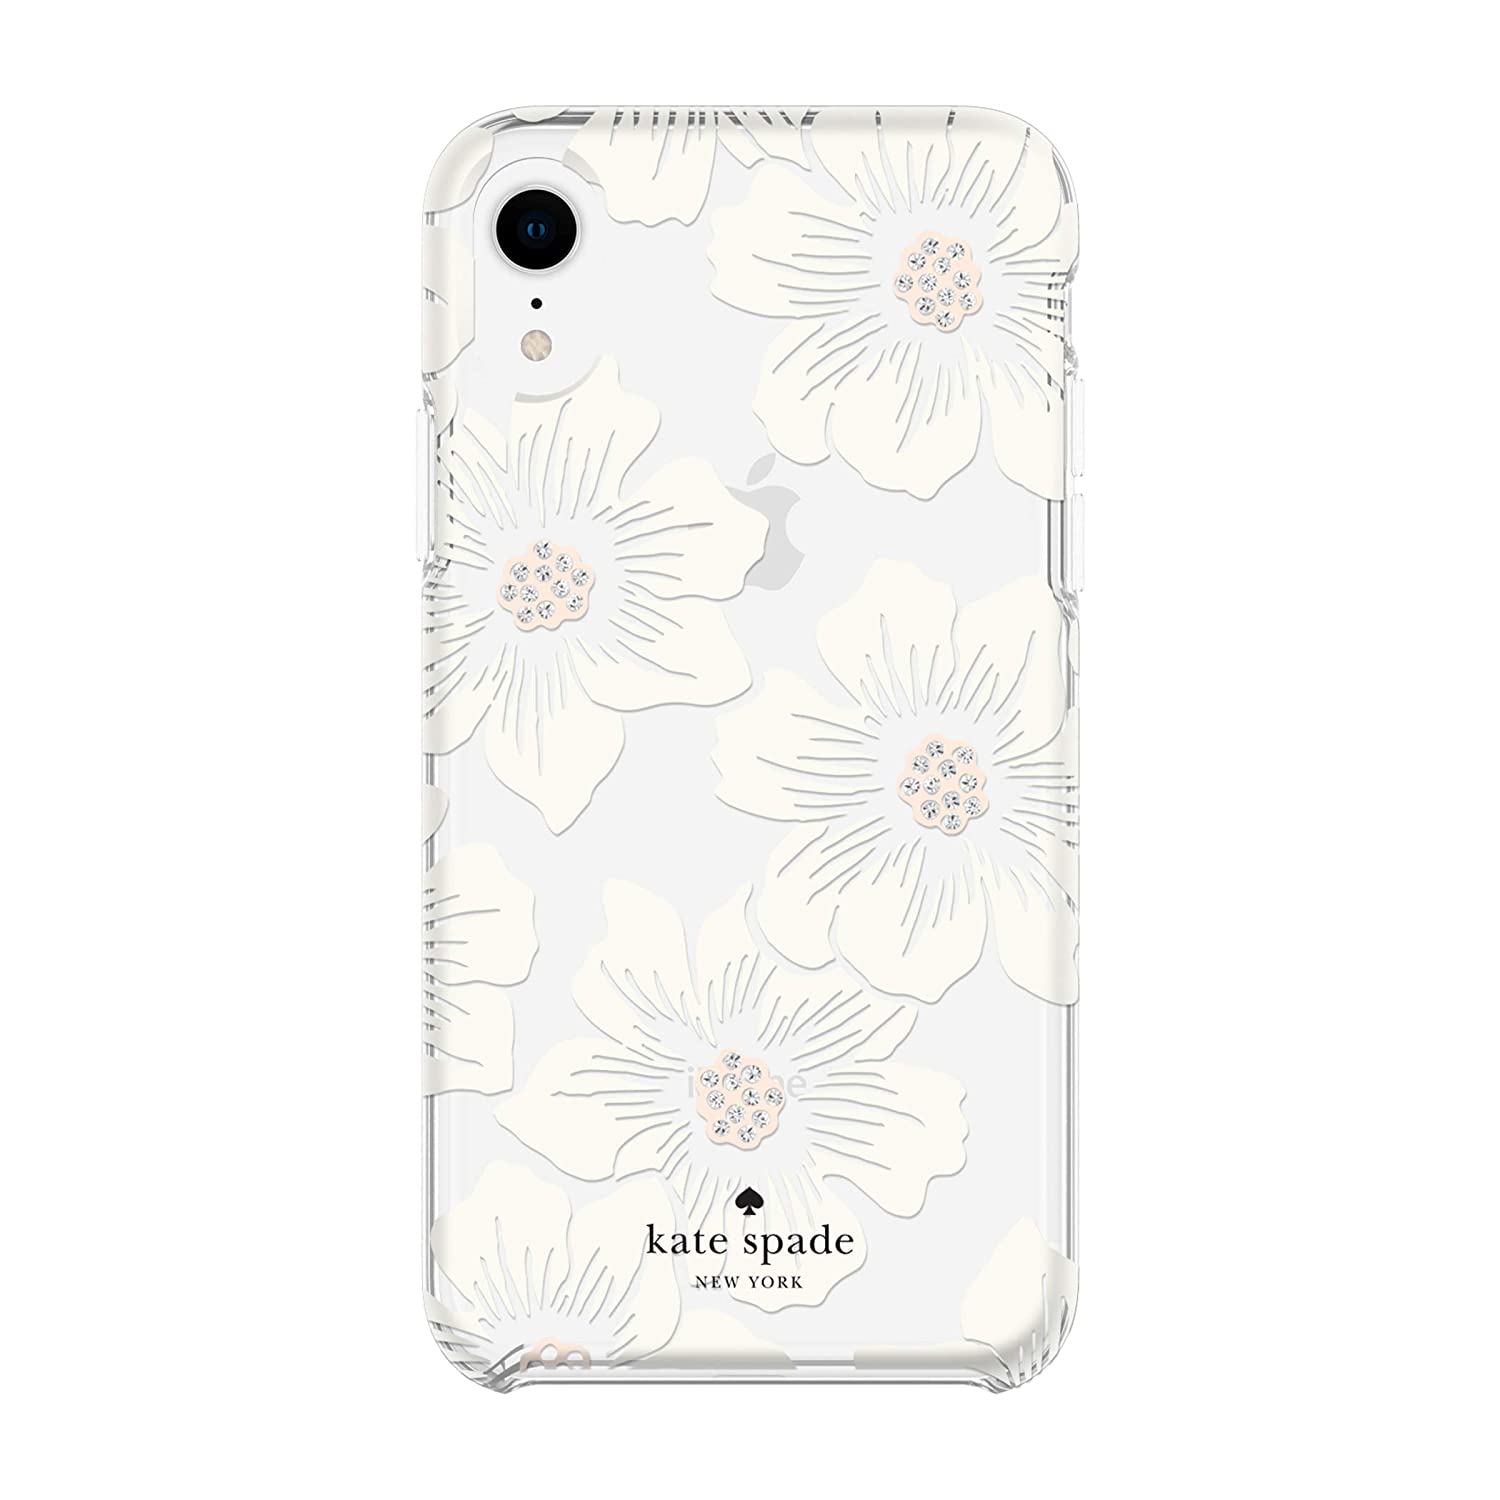 Kate Spade New York Phone Case | for Apple iPhone XR | Protective Phone Cases with Slim Design, Drop Protection, and Floral Print - Hollyhock Cream/Blush/Crystal Gems/Clear